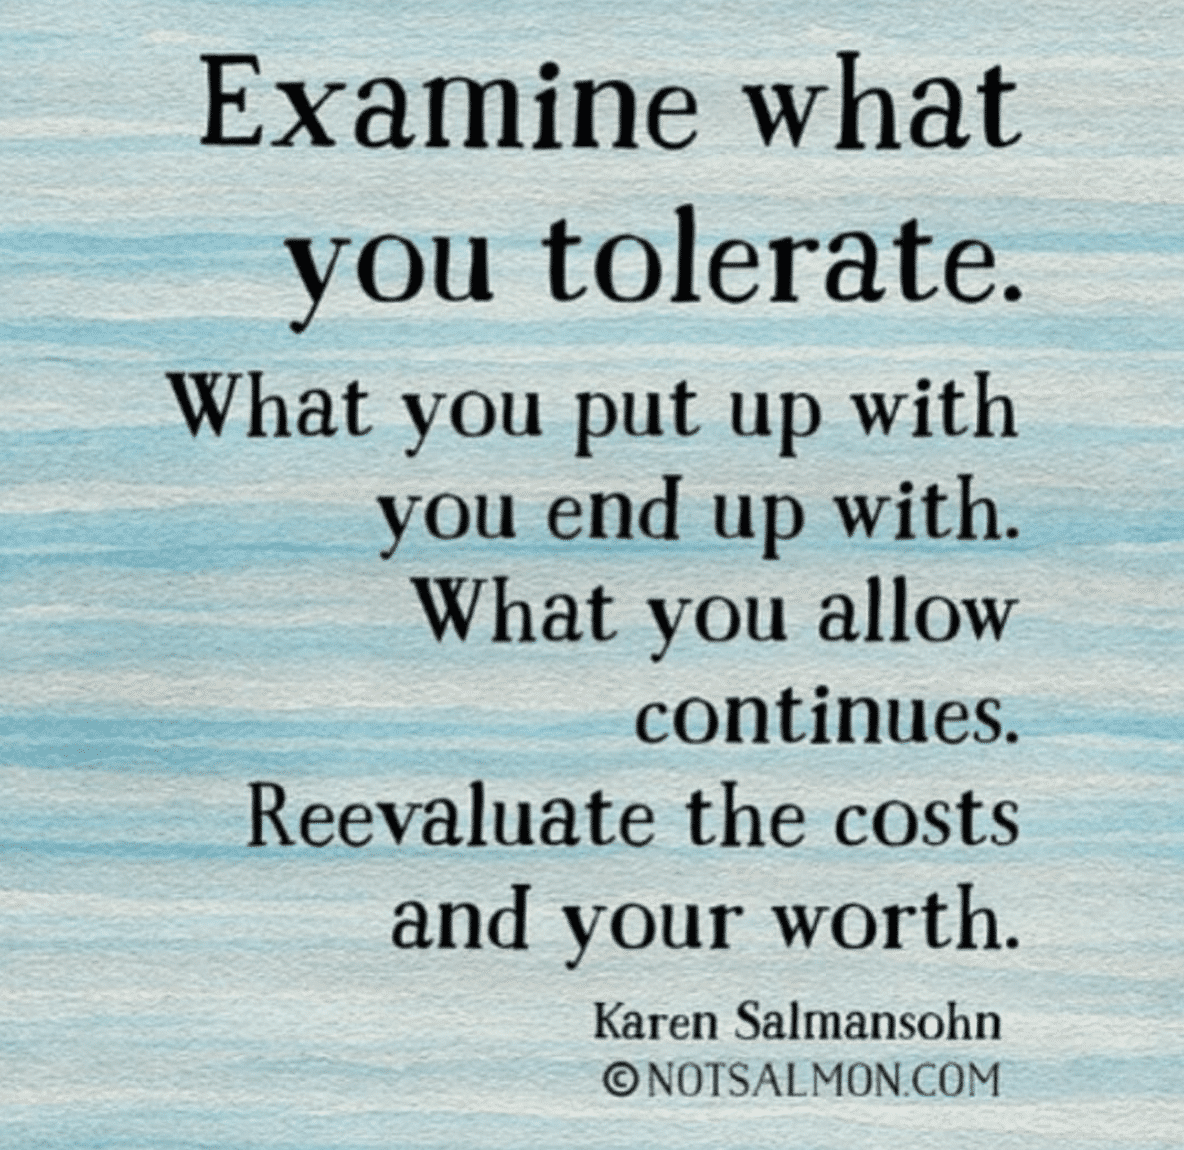 quote examine what you tolerate